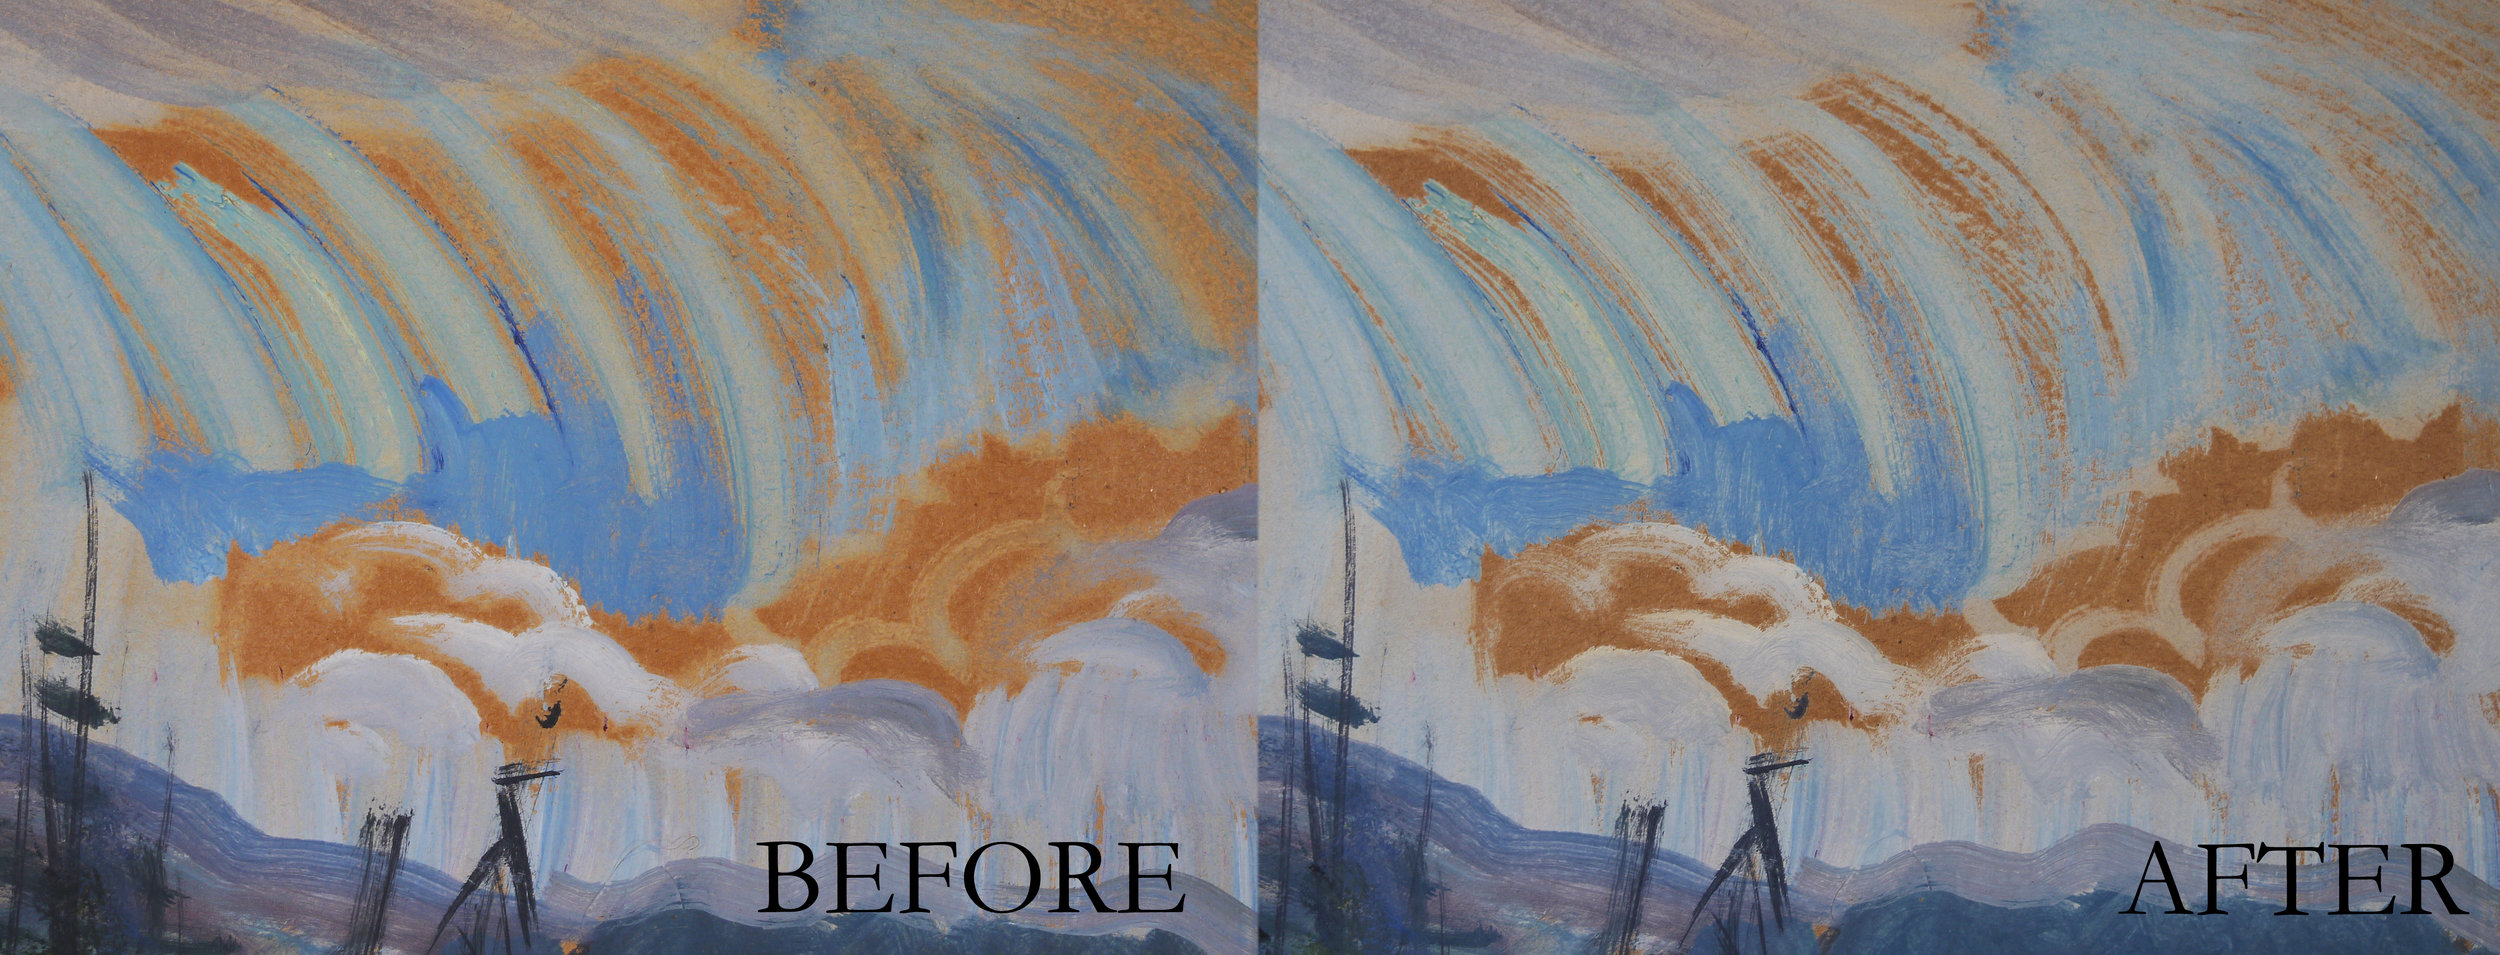 Shore Scene with Sunset,  by Emily Carr  -  detail, before and after conservation treatment. The yellow tinge is removed and the brown paper is back to its original tone.